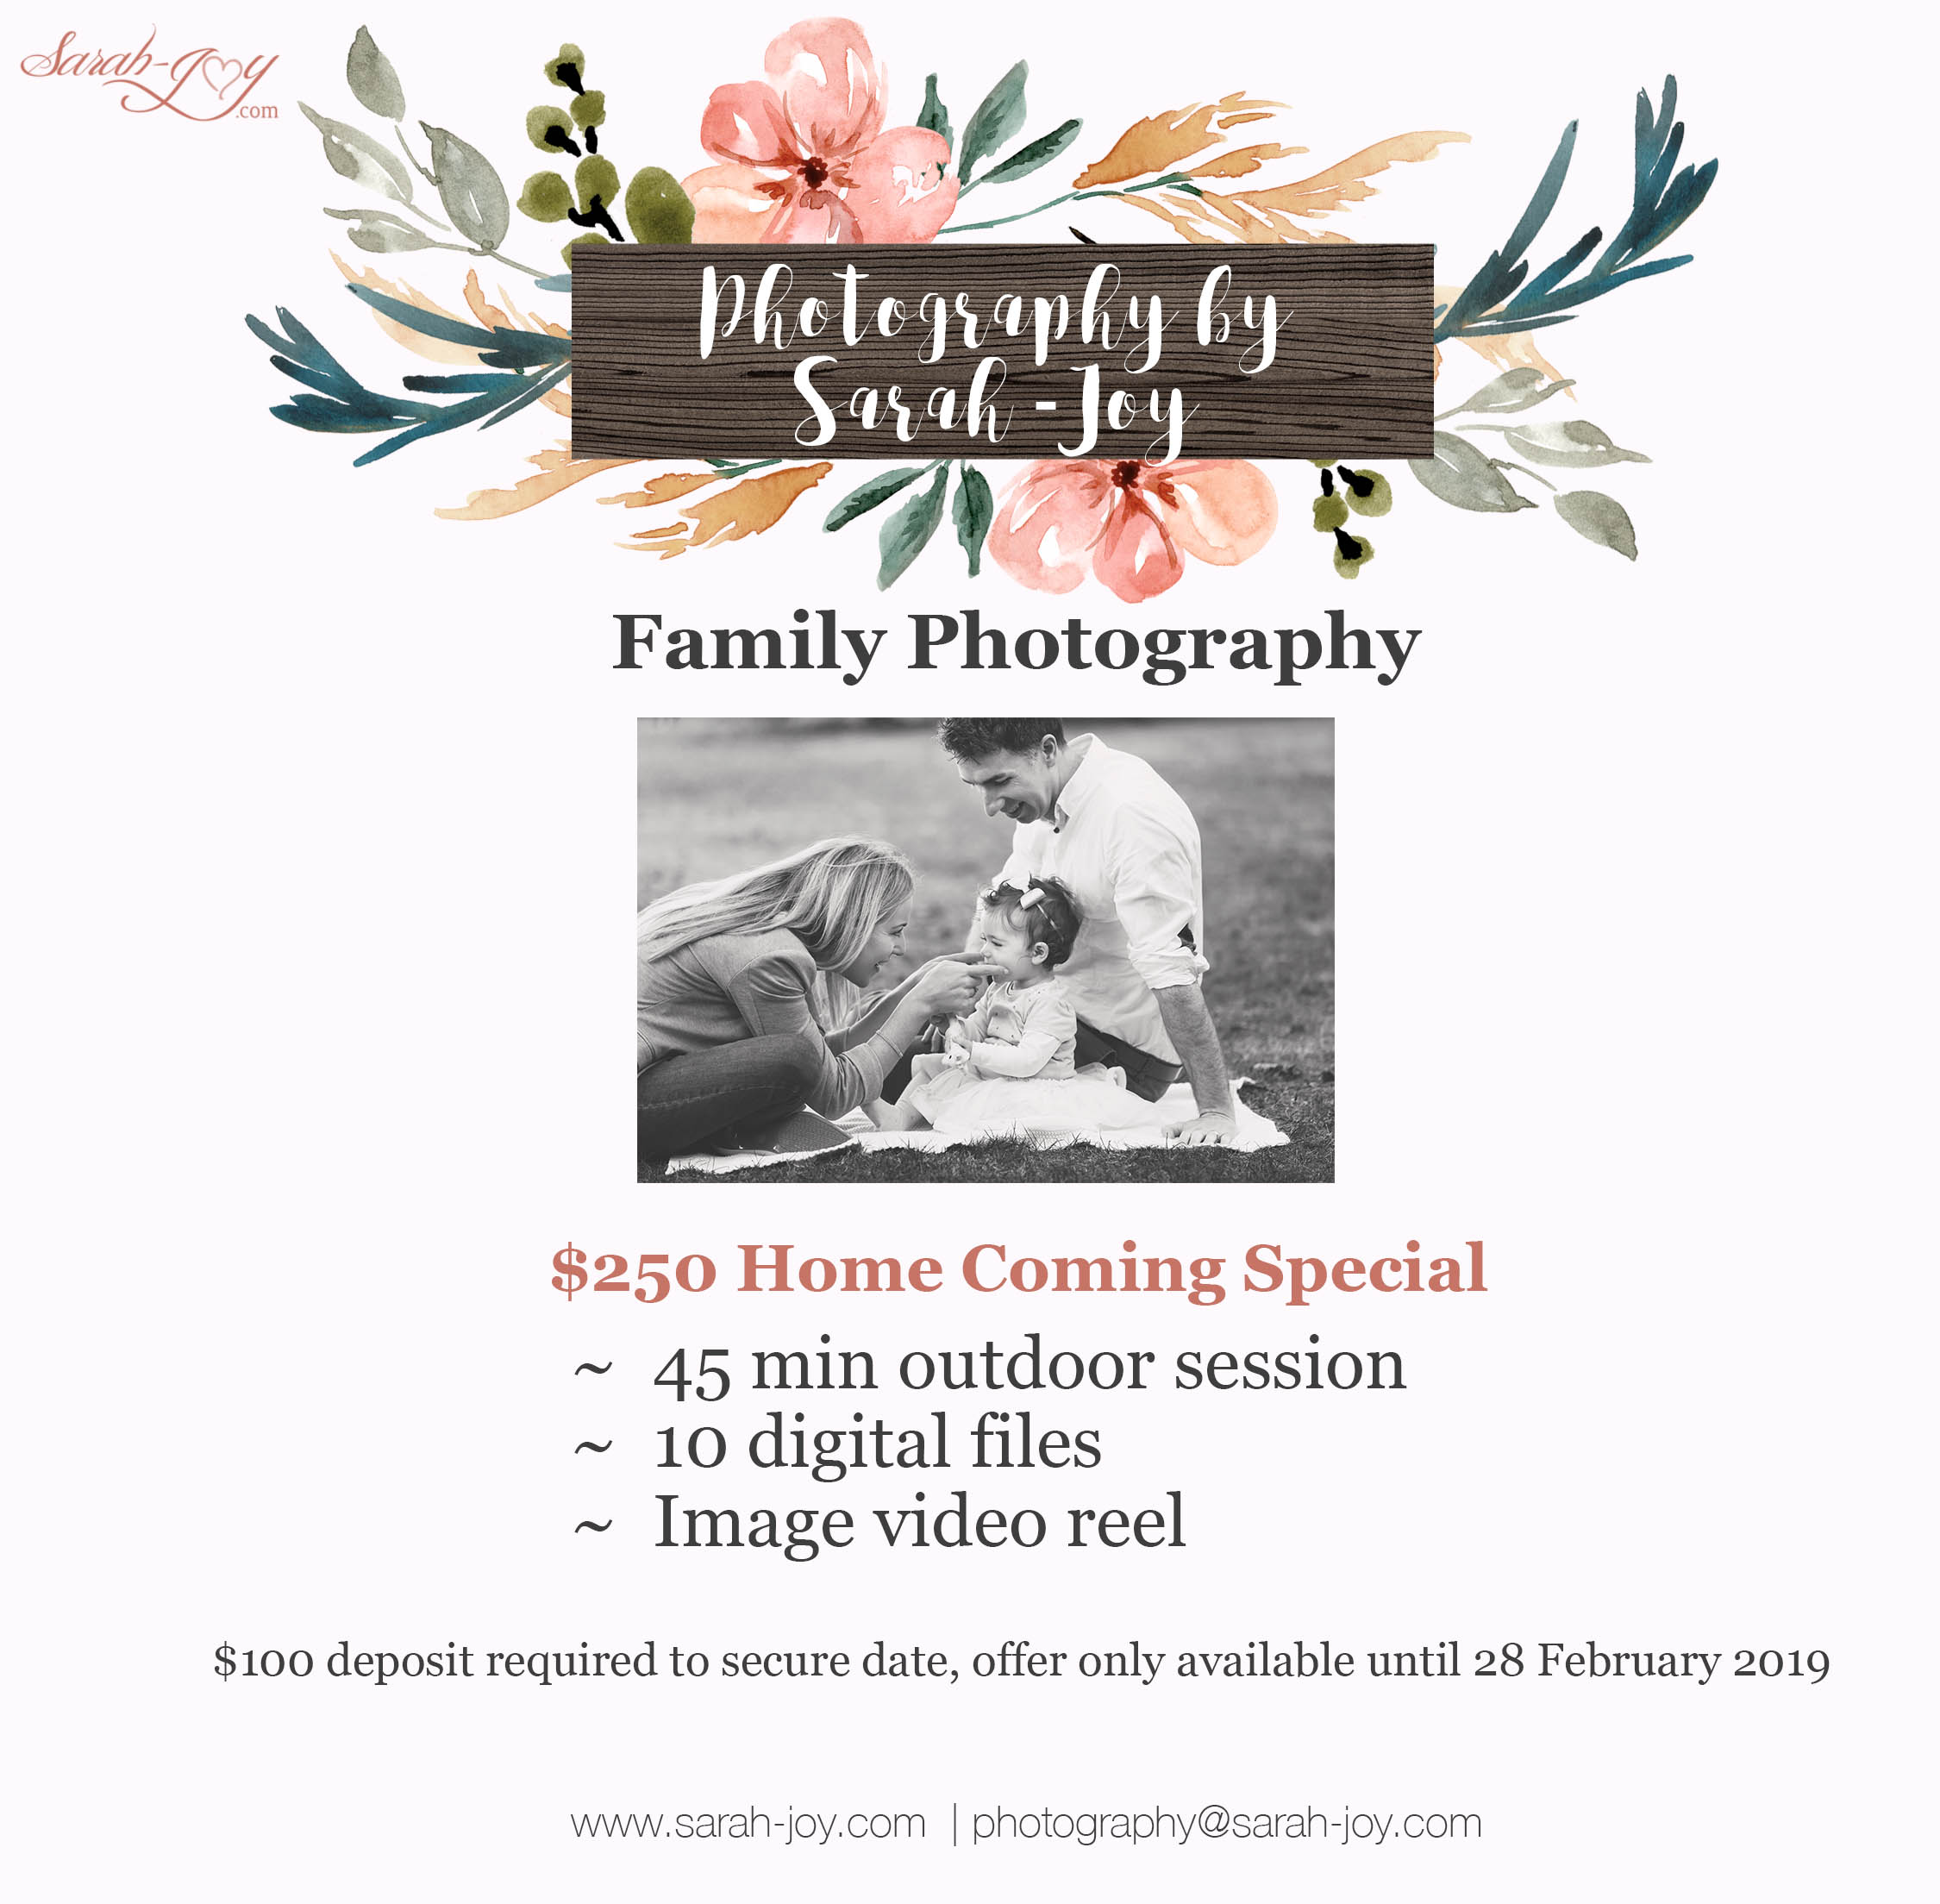 Fitzroy family photography price list